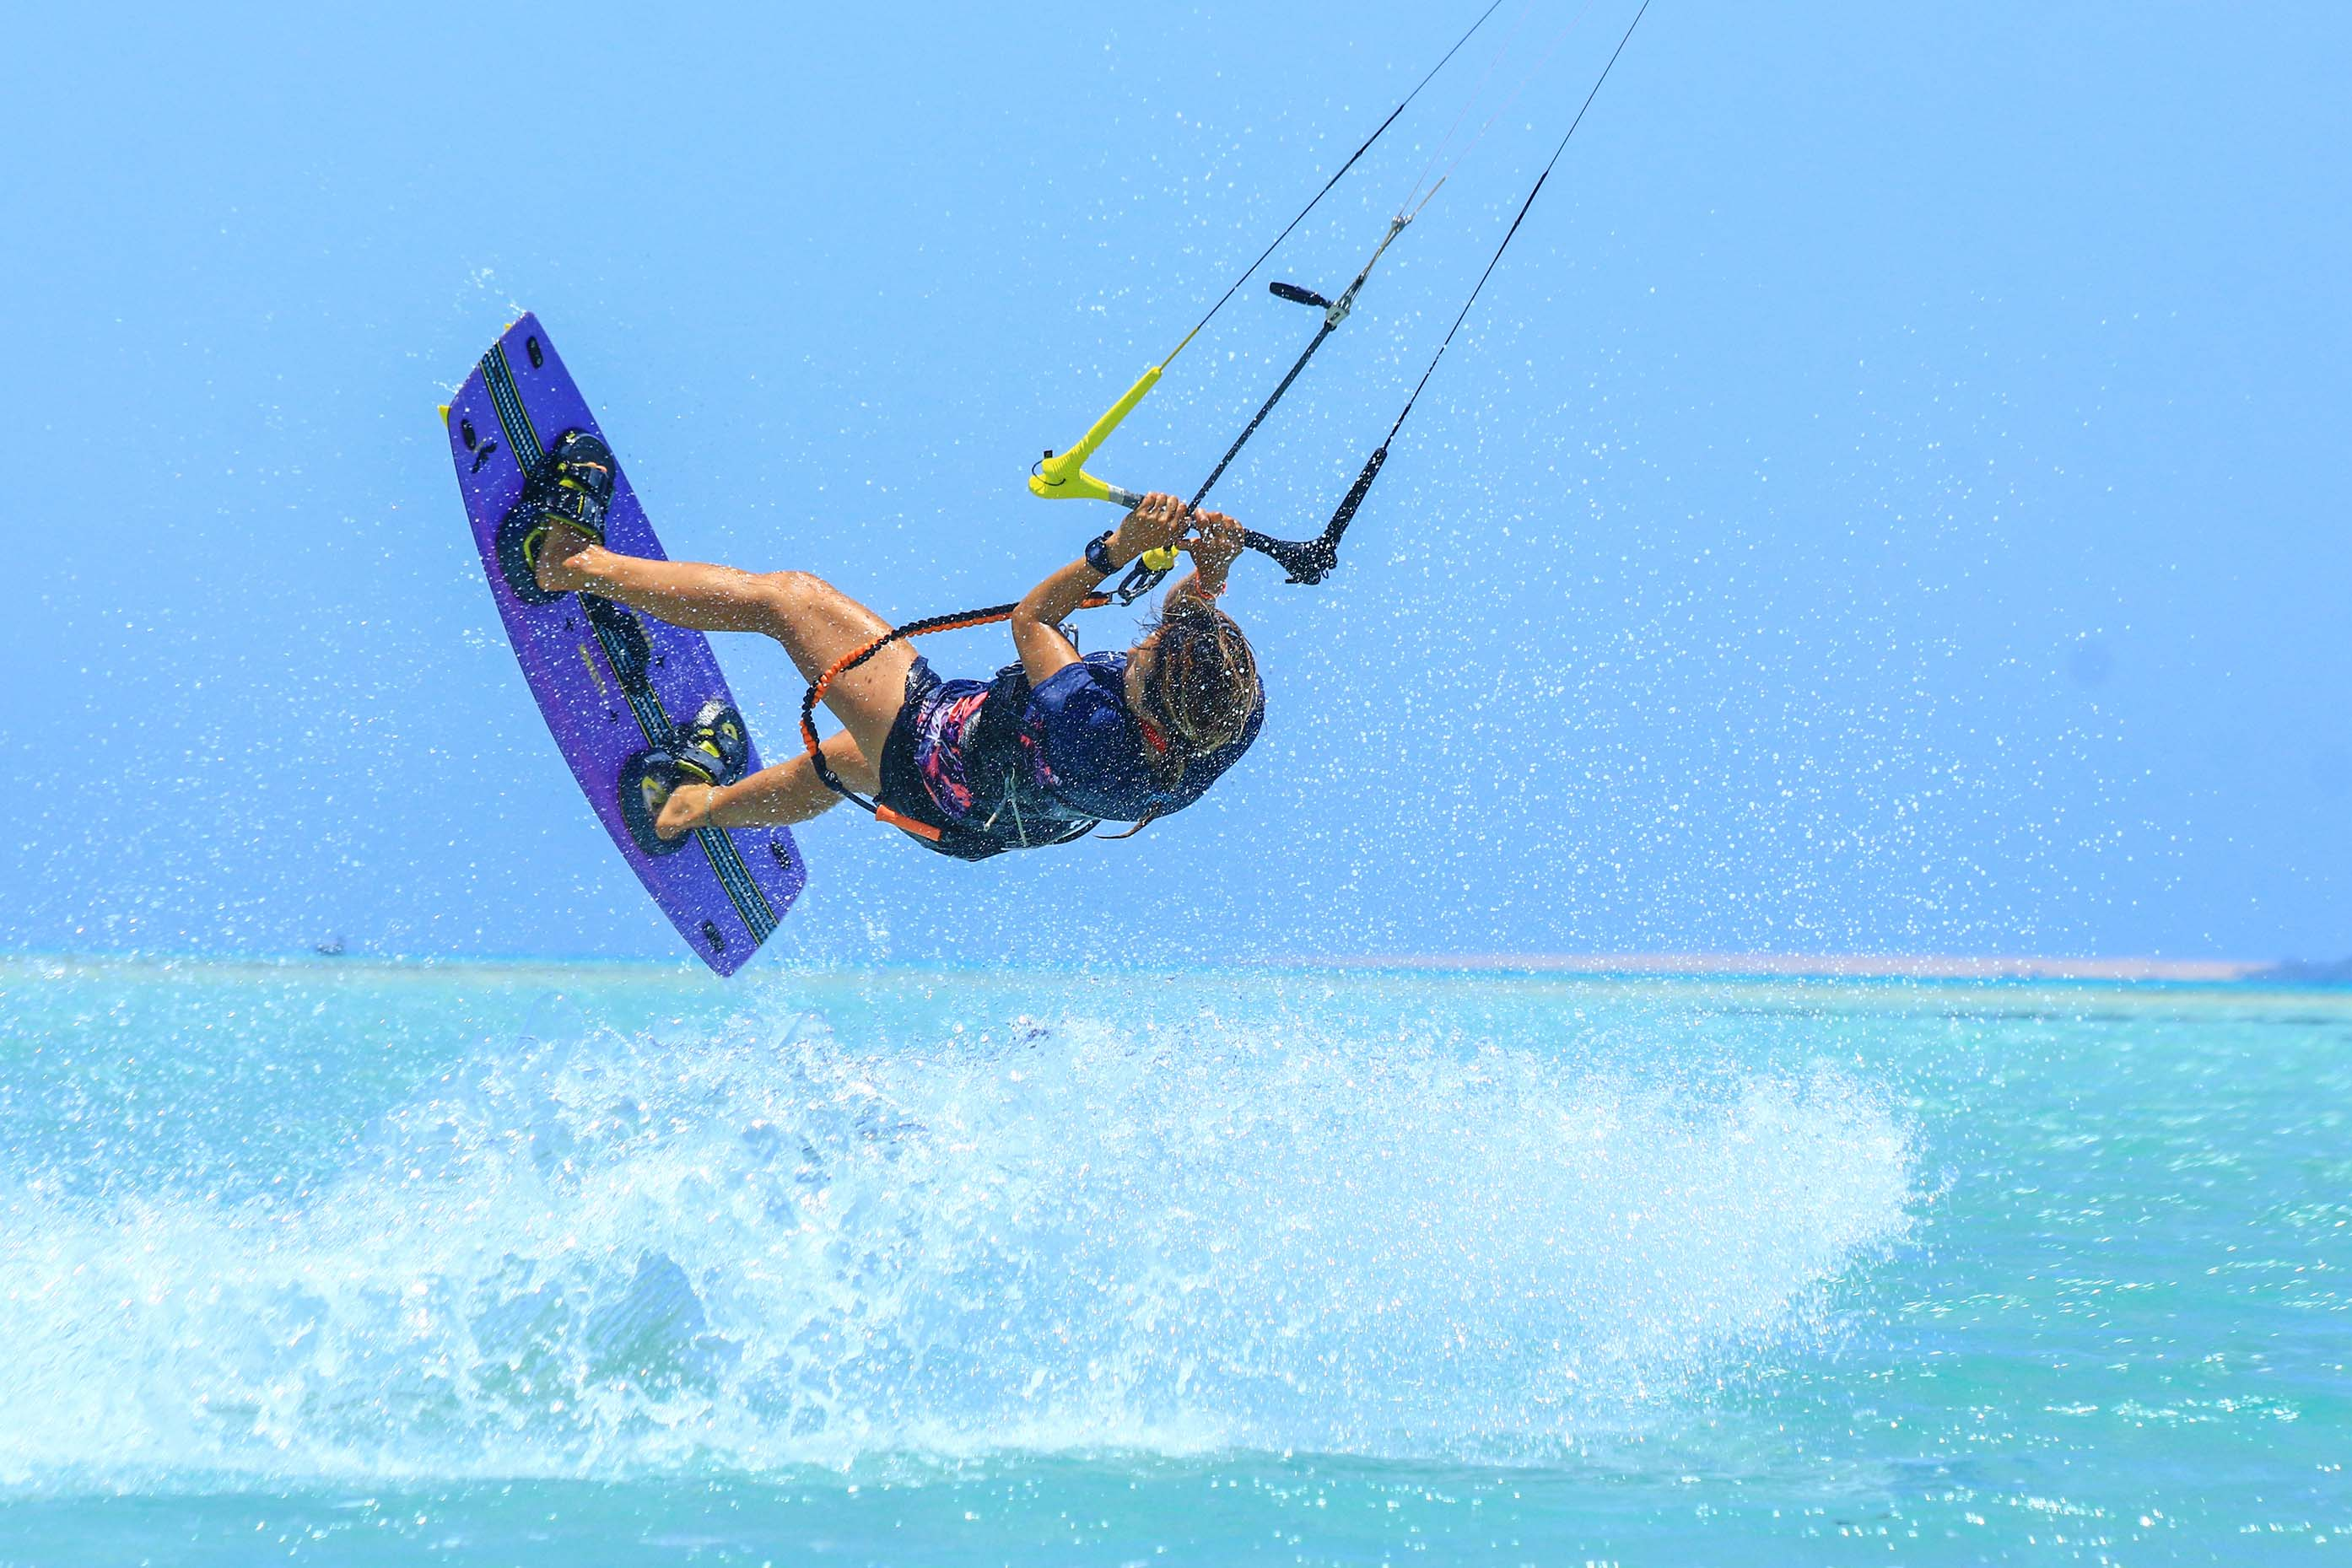 Julia Mac Kitesurfing